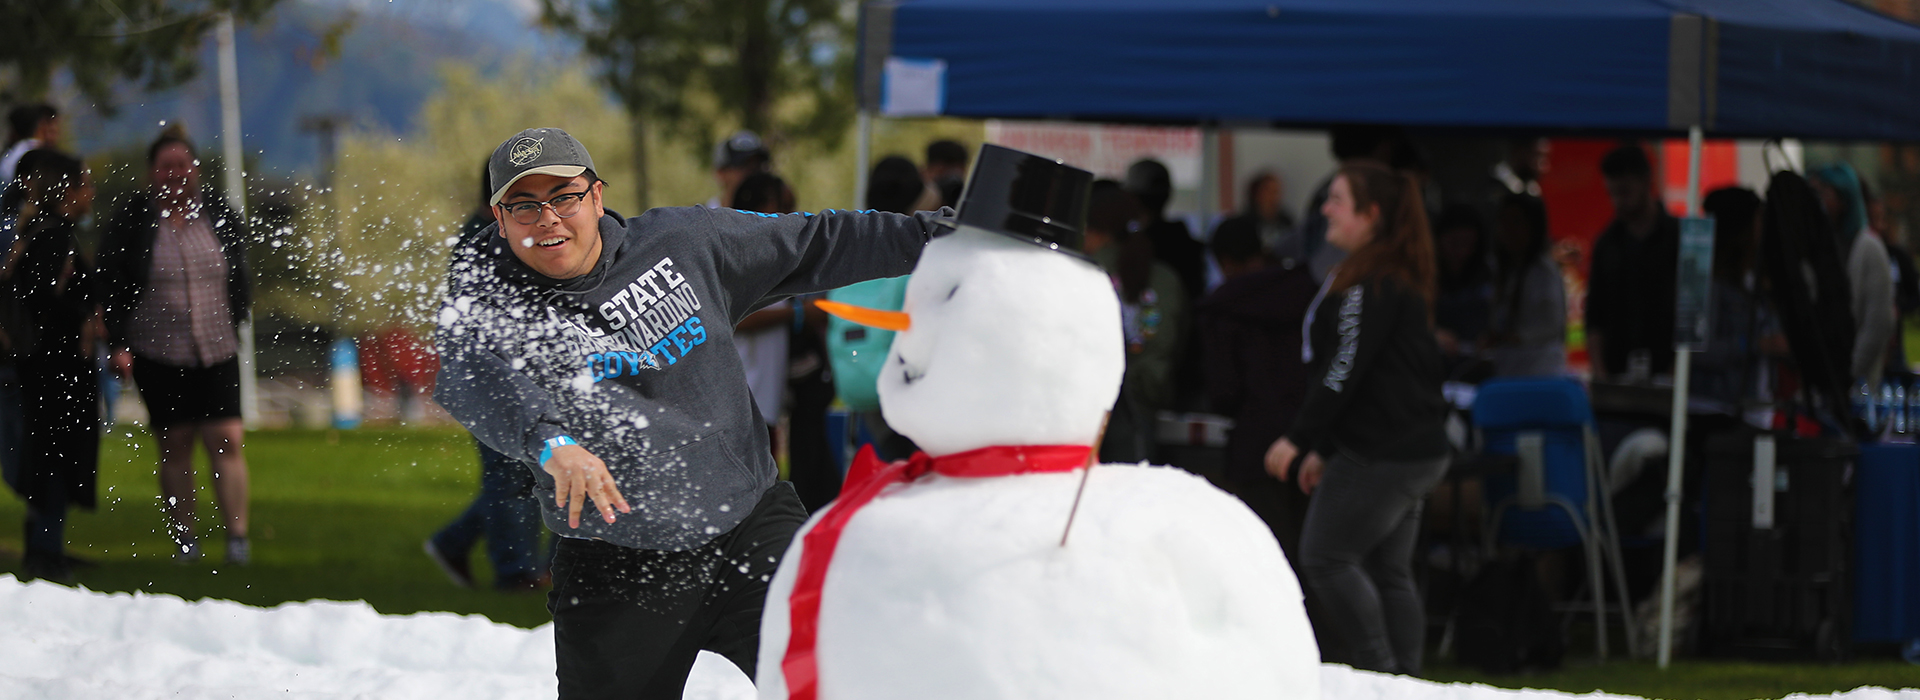 Annual Snow Day at CSUSB attracts students, faculty and staff